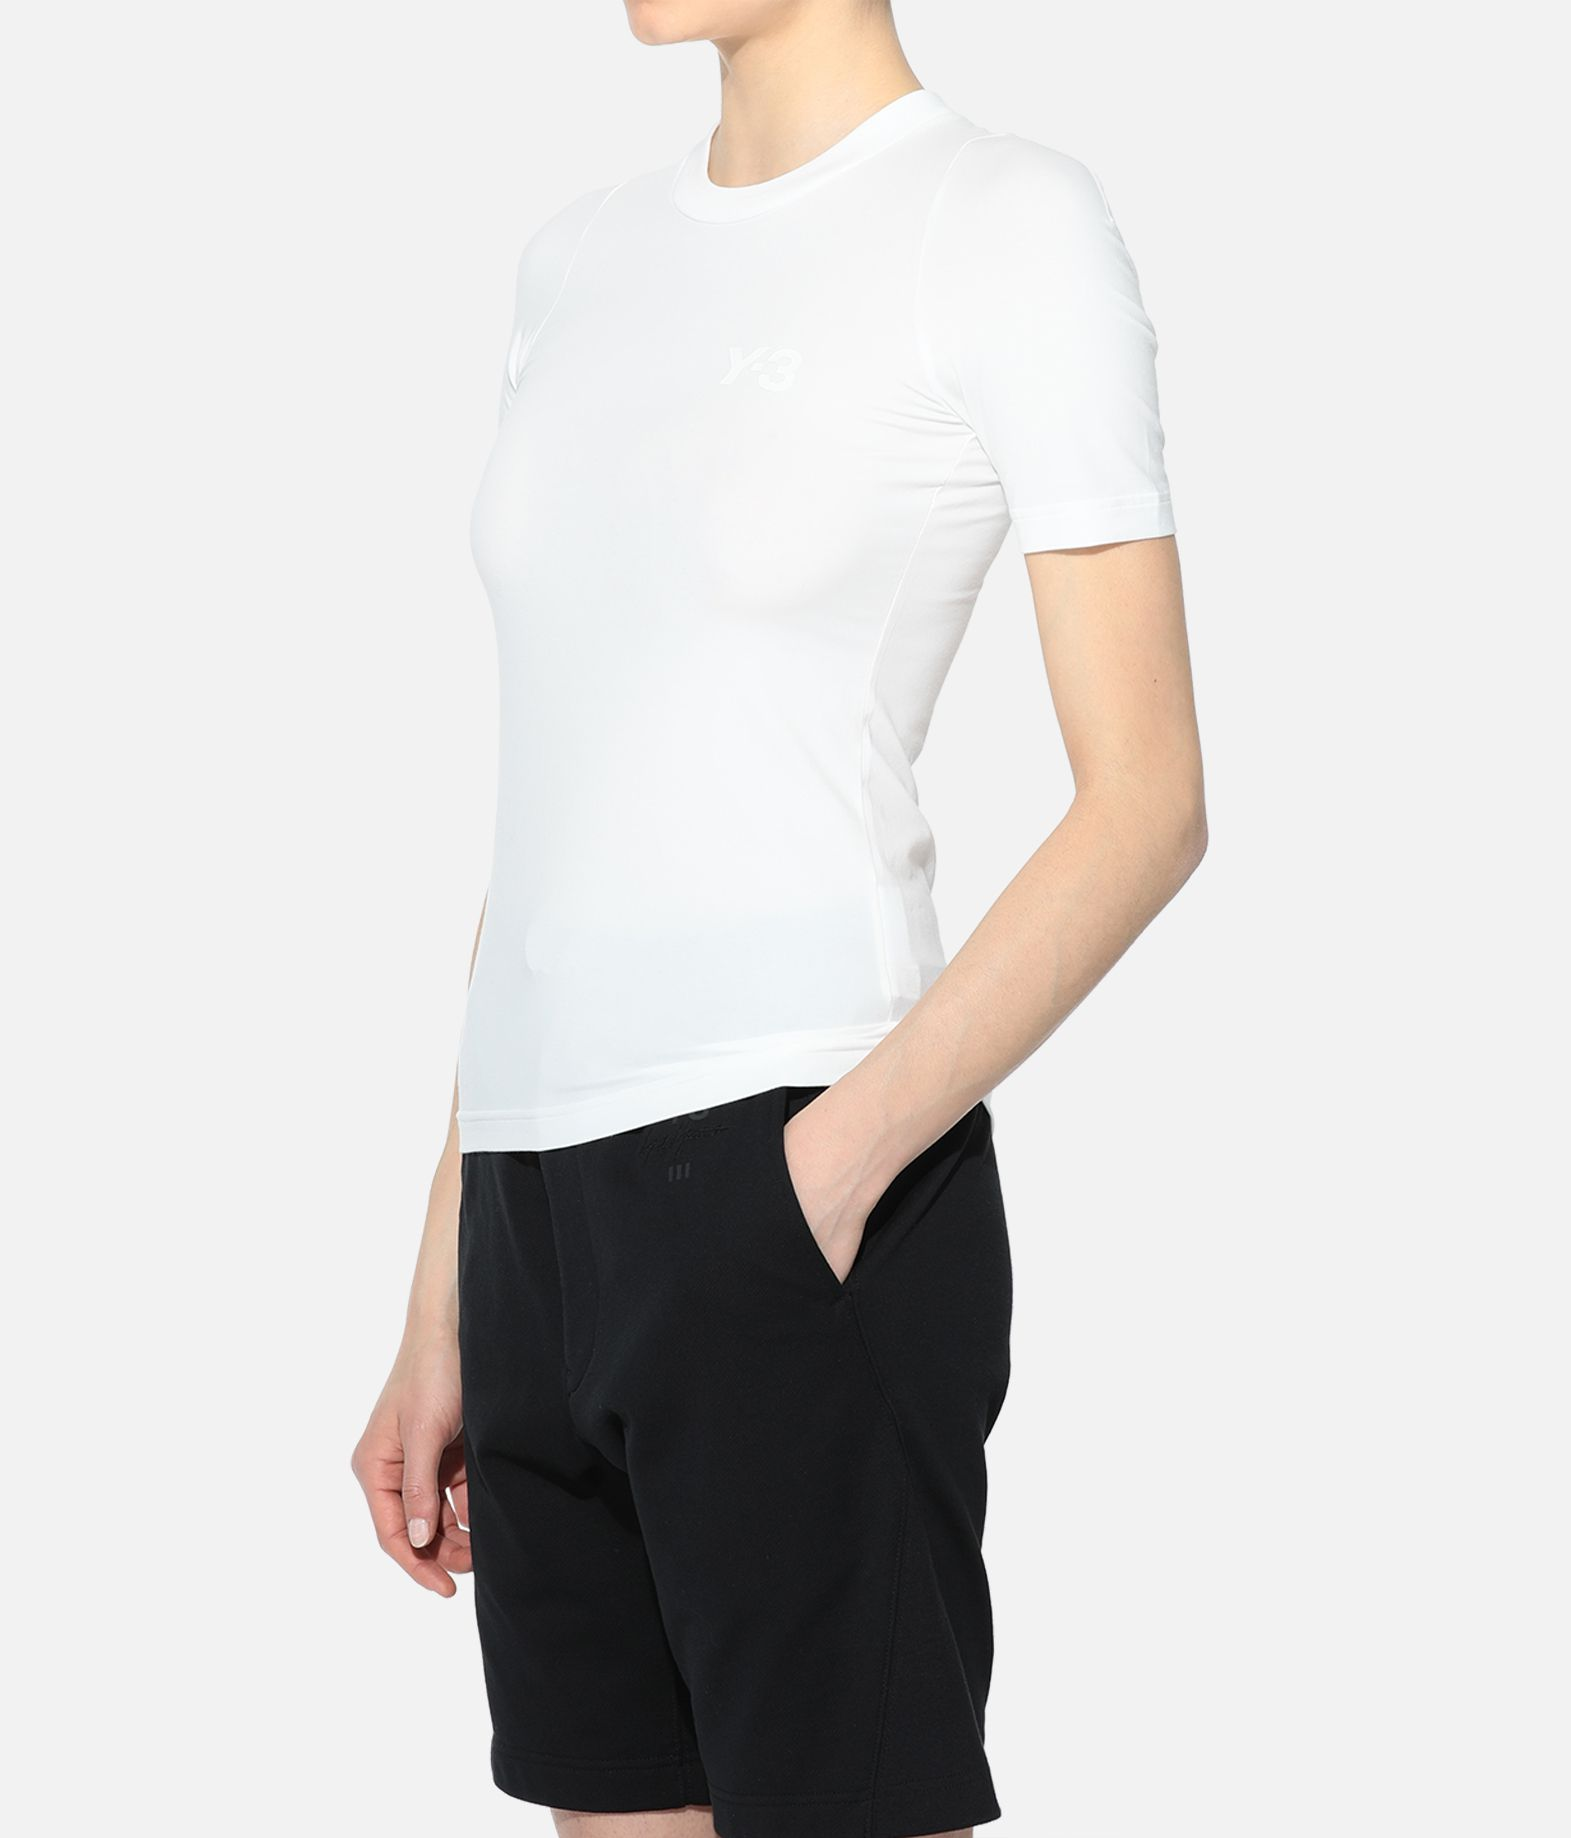 Y-3 Y-3 GRAPHIC TEE Long sleeve t-shirt Woman e